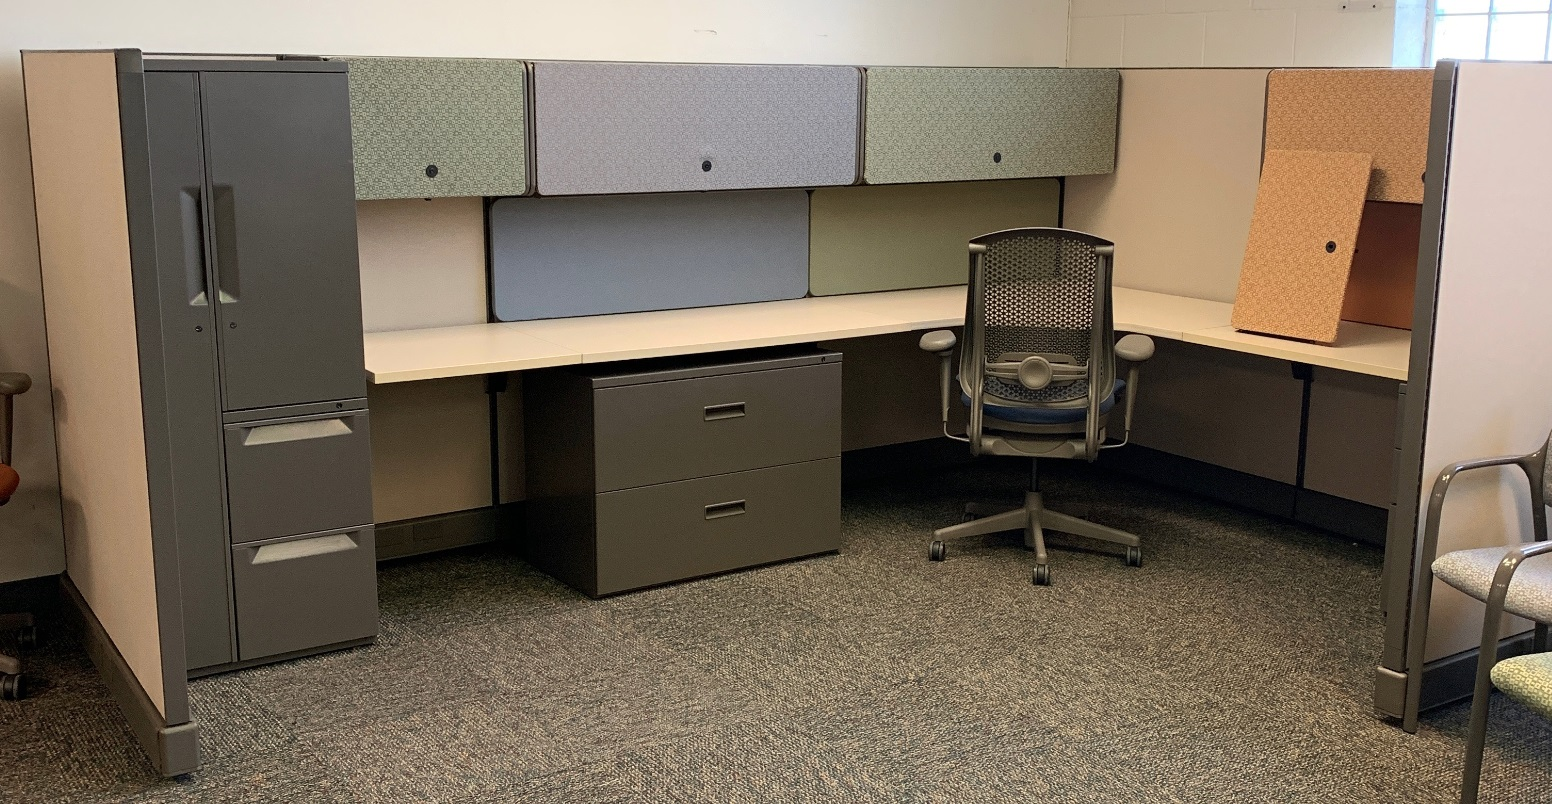 Used Herman Miller AO448 448×48 cubicles with 448448″ high panels